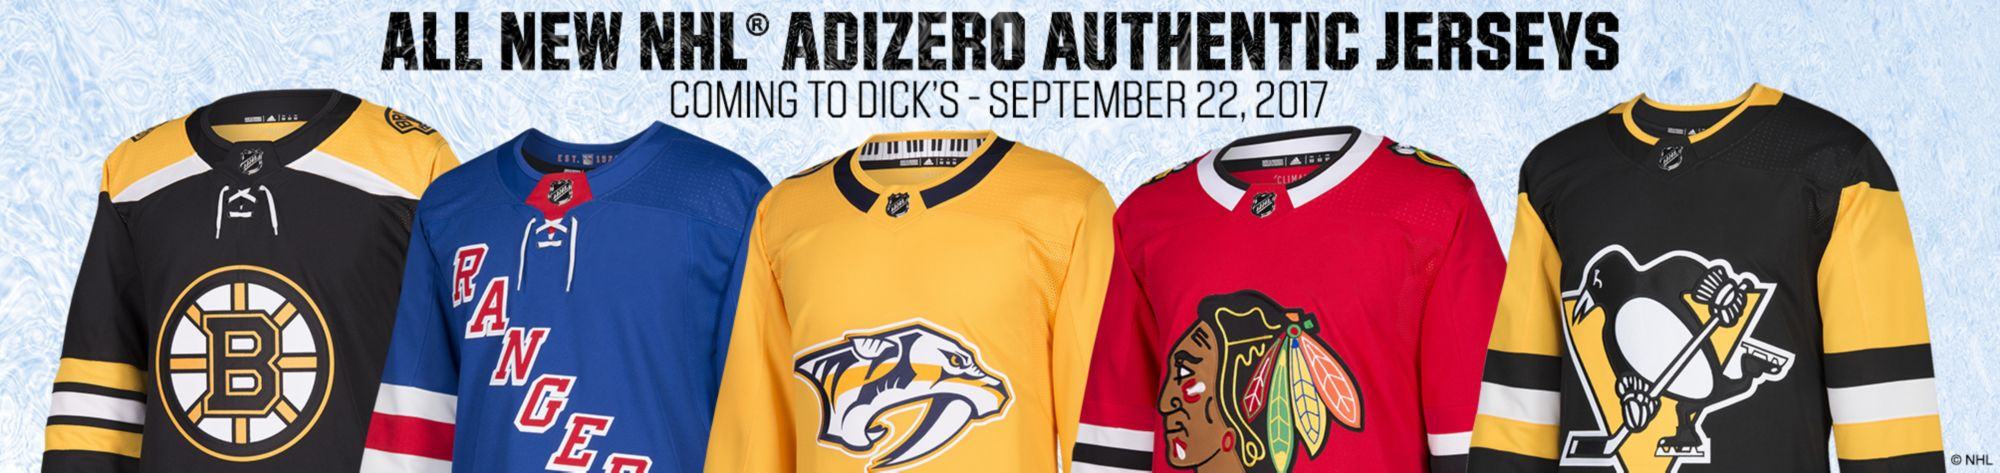 New NHL Adizero Authentic Jerseys